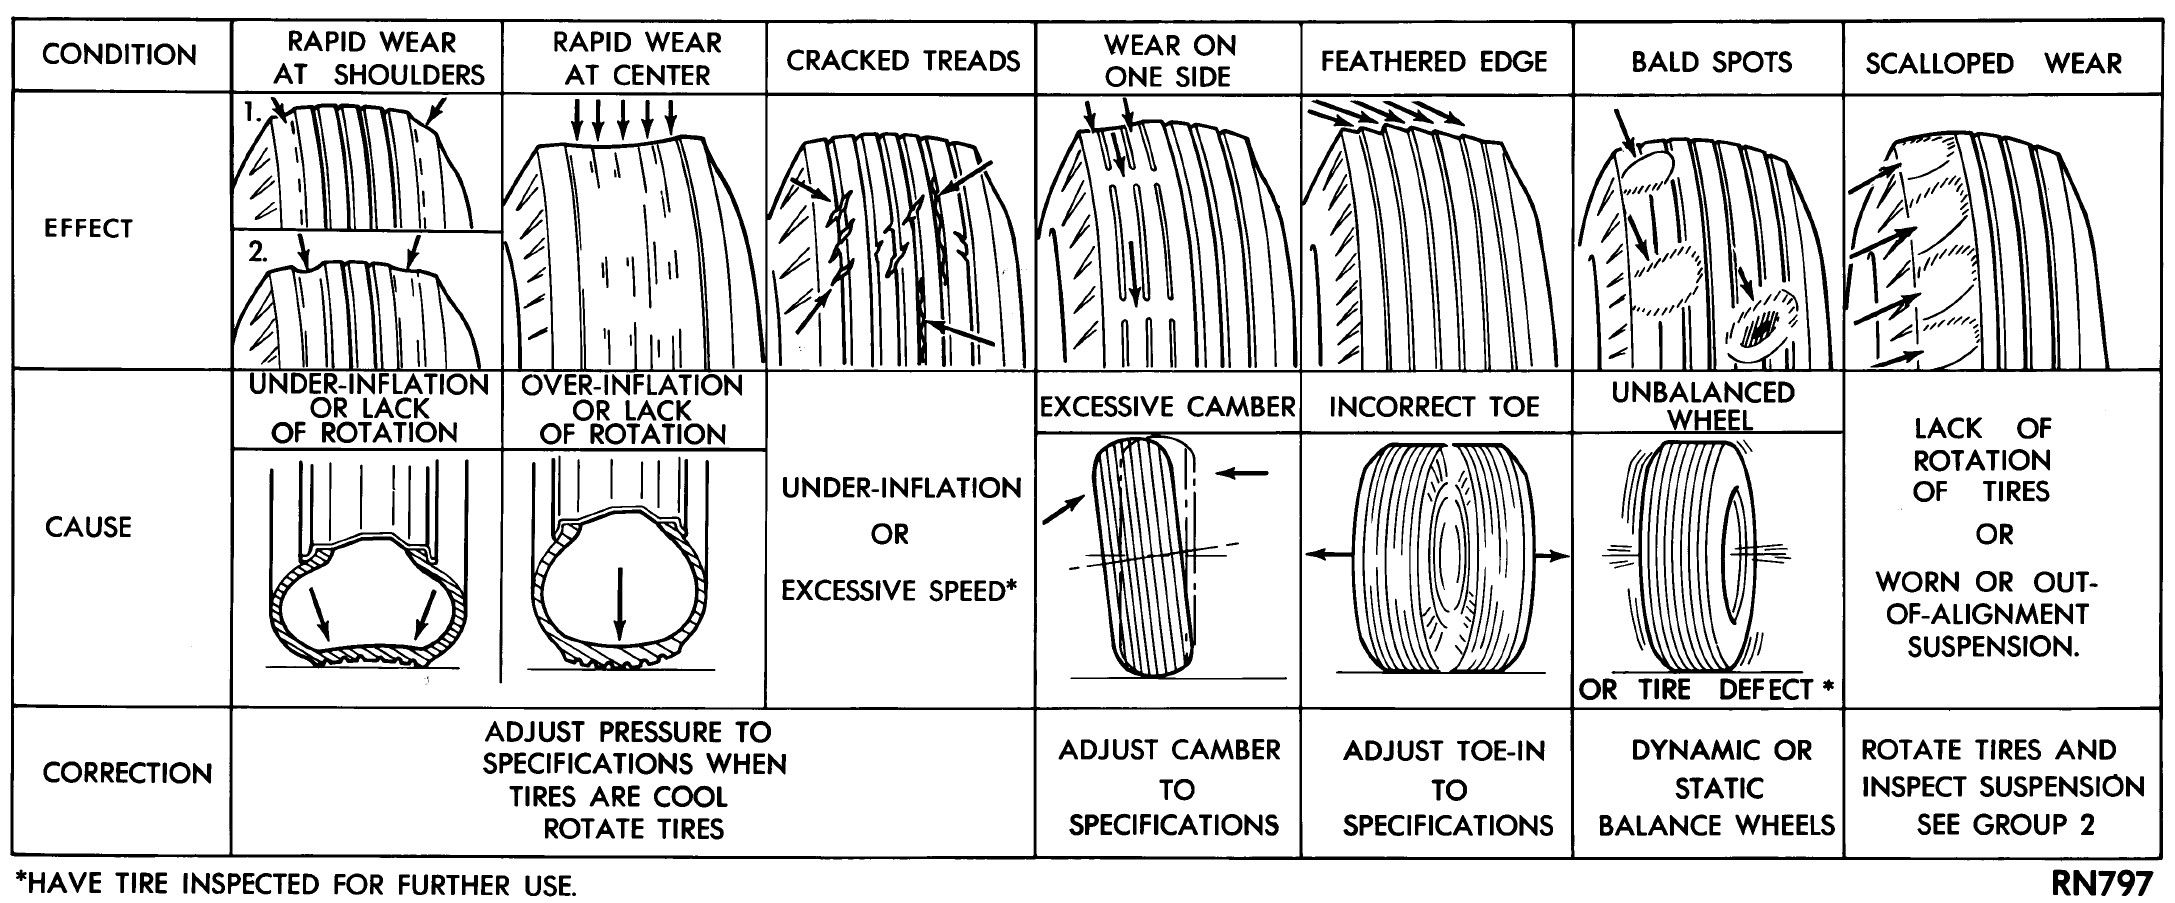 good to know tire wear cause and effect chart with solutions [ 2175 x 903 Pixel ]